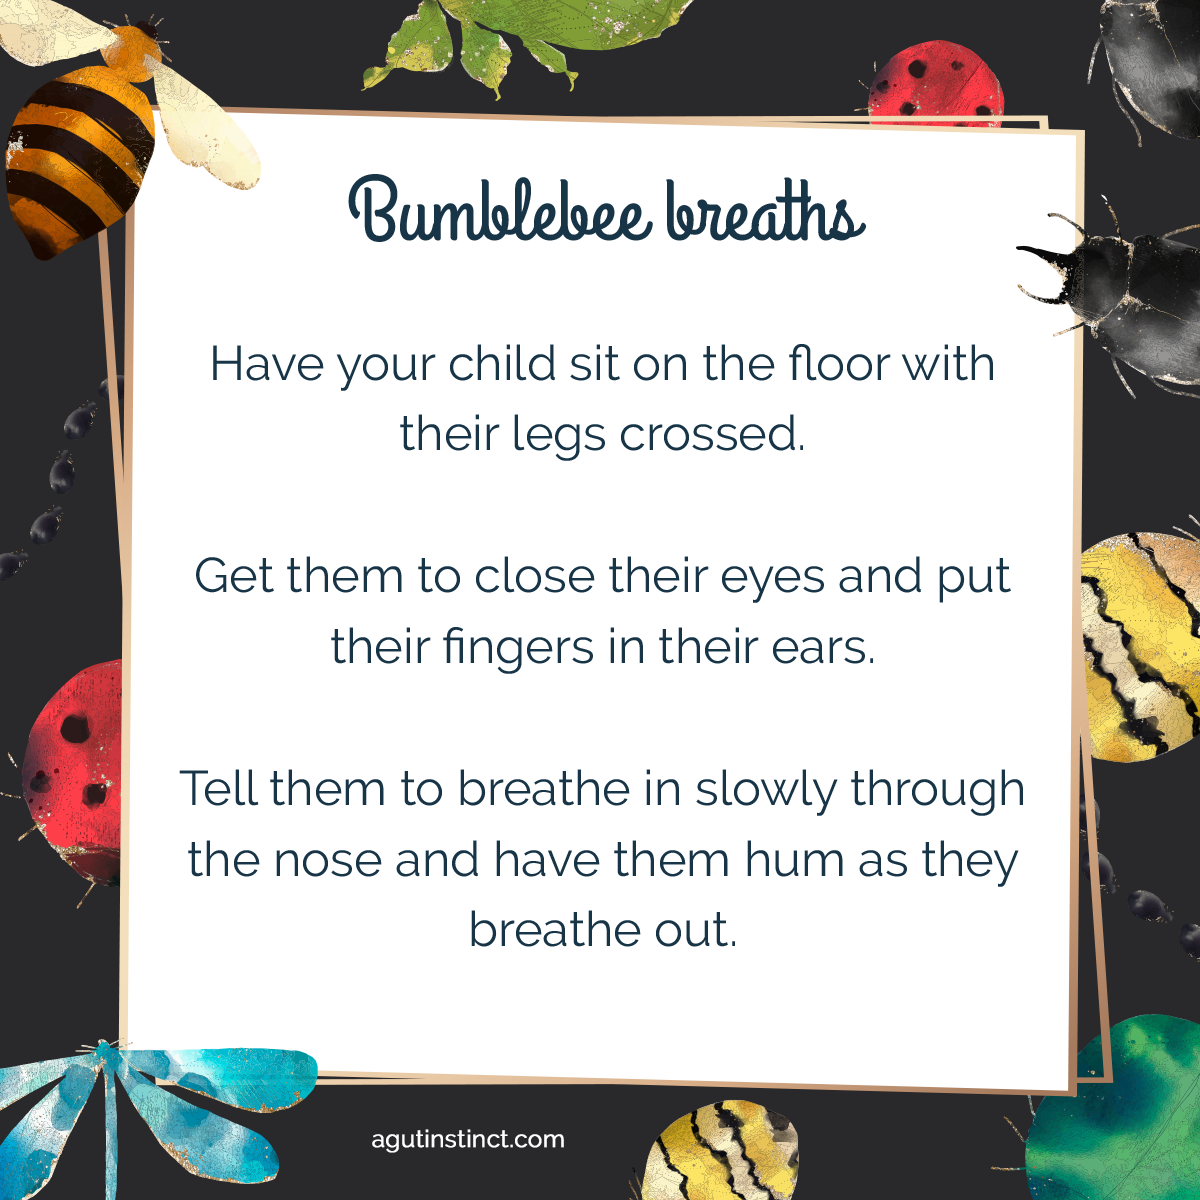 an illustration of different insects including bees, ladybugs, and dragonflies act as a colourful border around the text in the middle. The text describes the steps to perform the Bumblebee Breaths meditation for kids so they can calm their mind and body before bedtime, leading to a more peaceful and less stressful bedtime for both the parent and the child